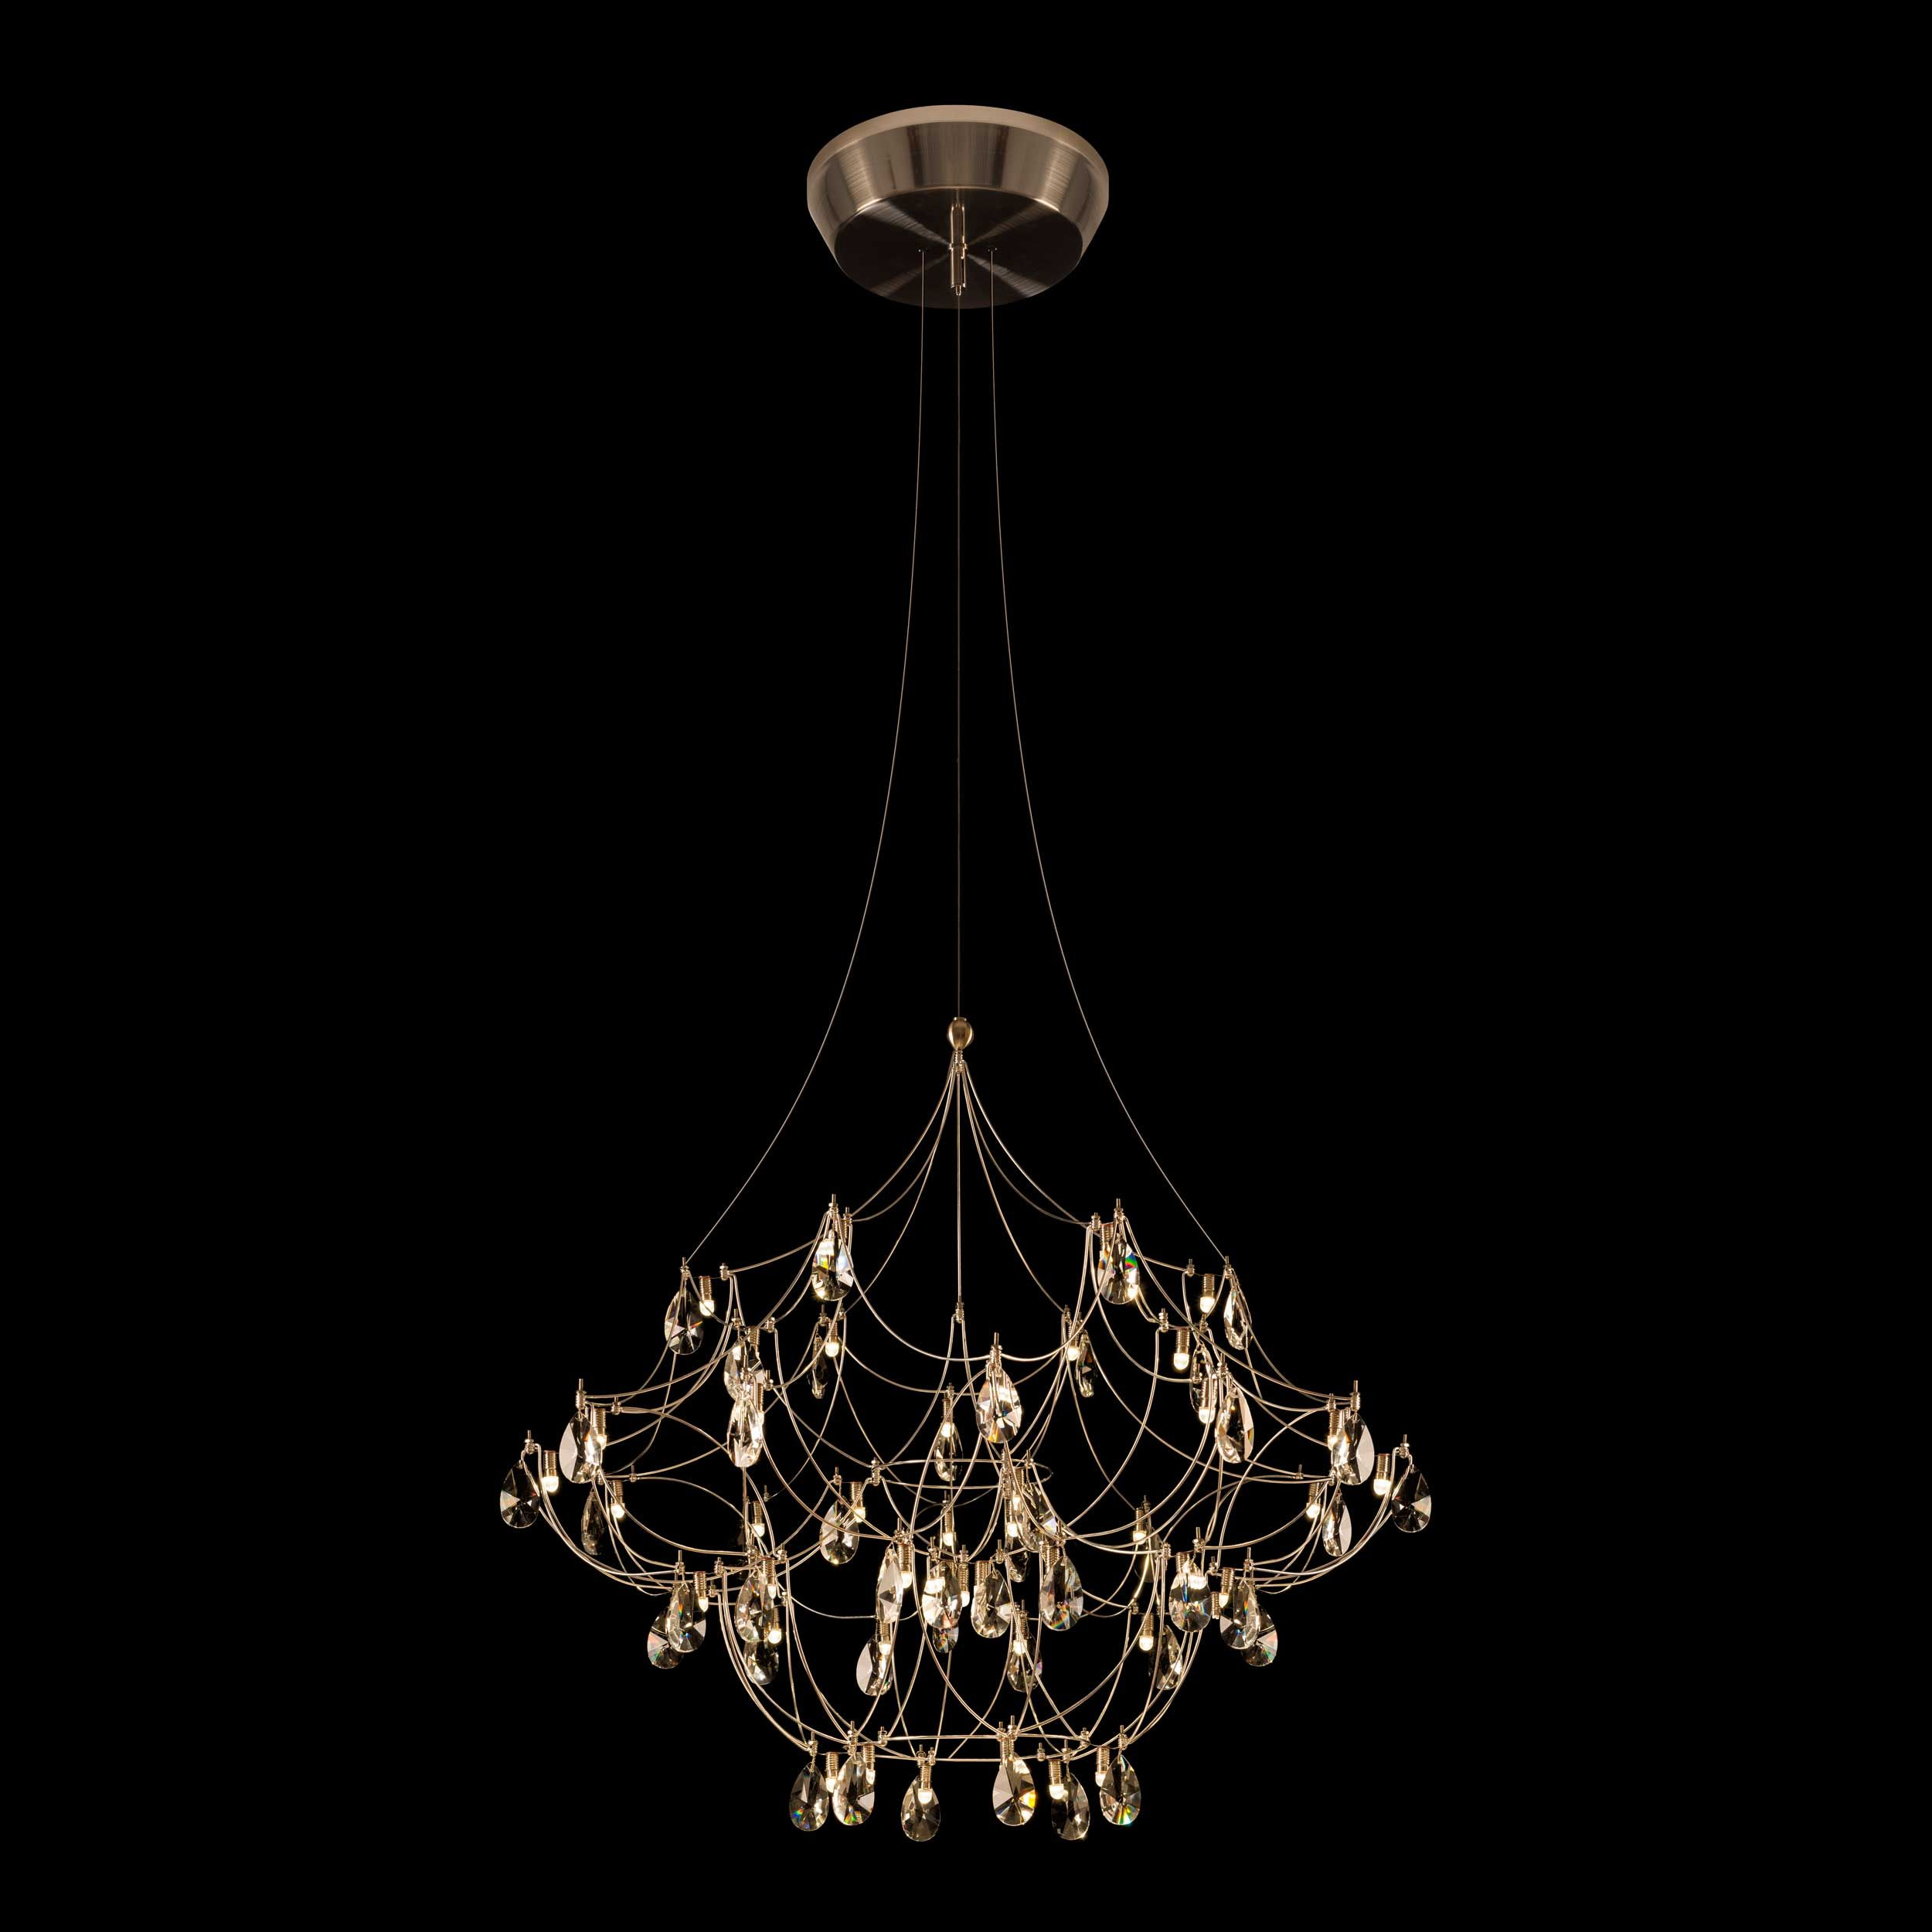 Crystal Galaxy Chandelier By Edge Lighting Cryga24 12 K1 Sn Chandelier Edge Lighting Hanging Crystals